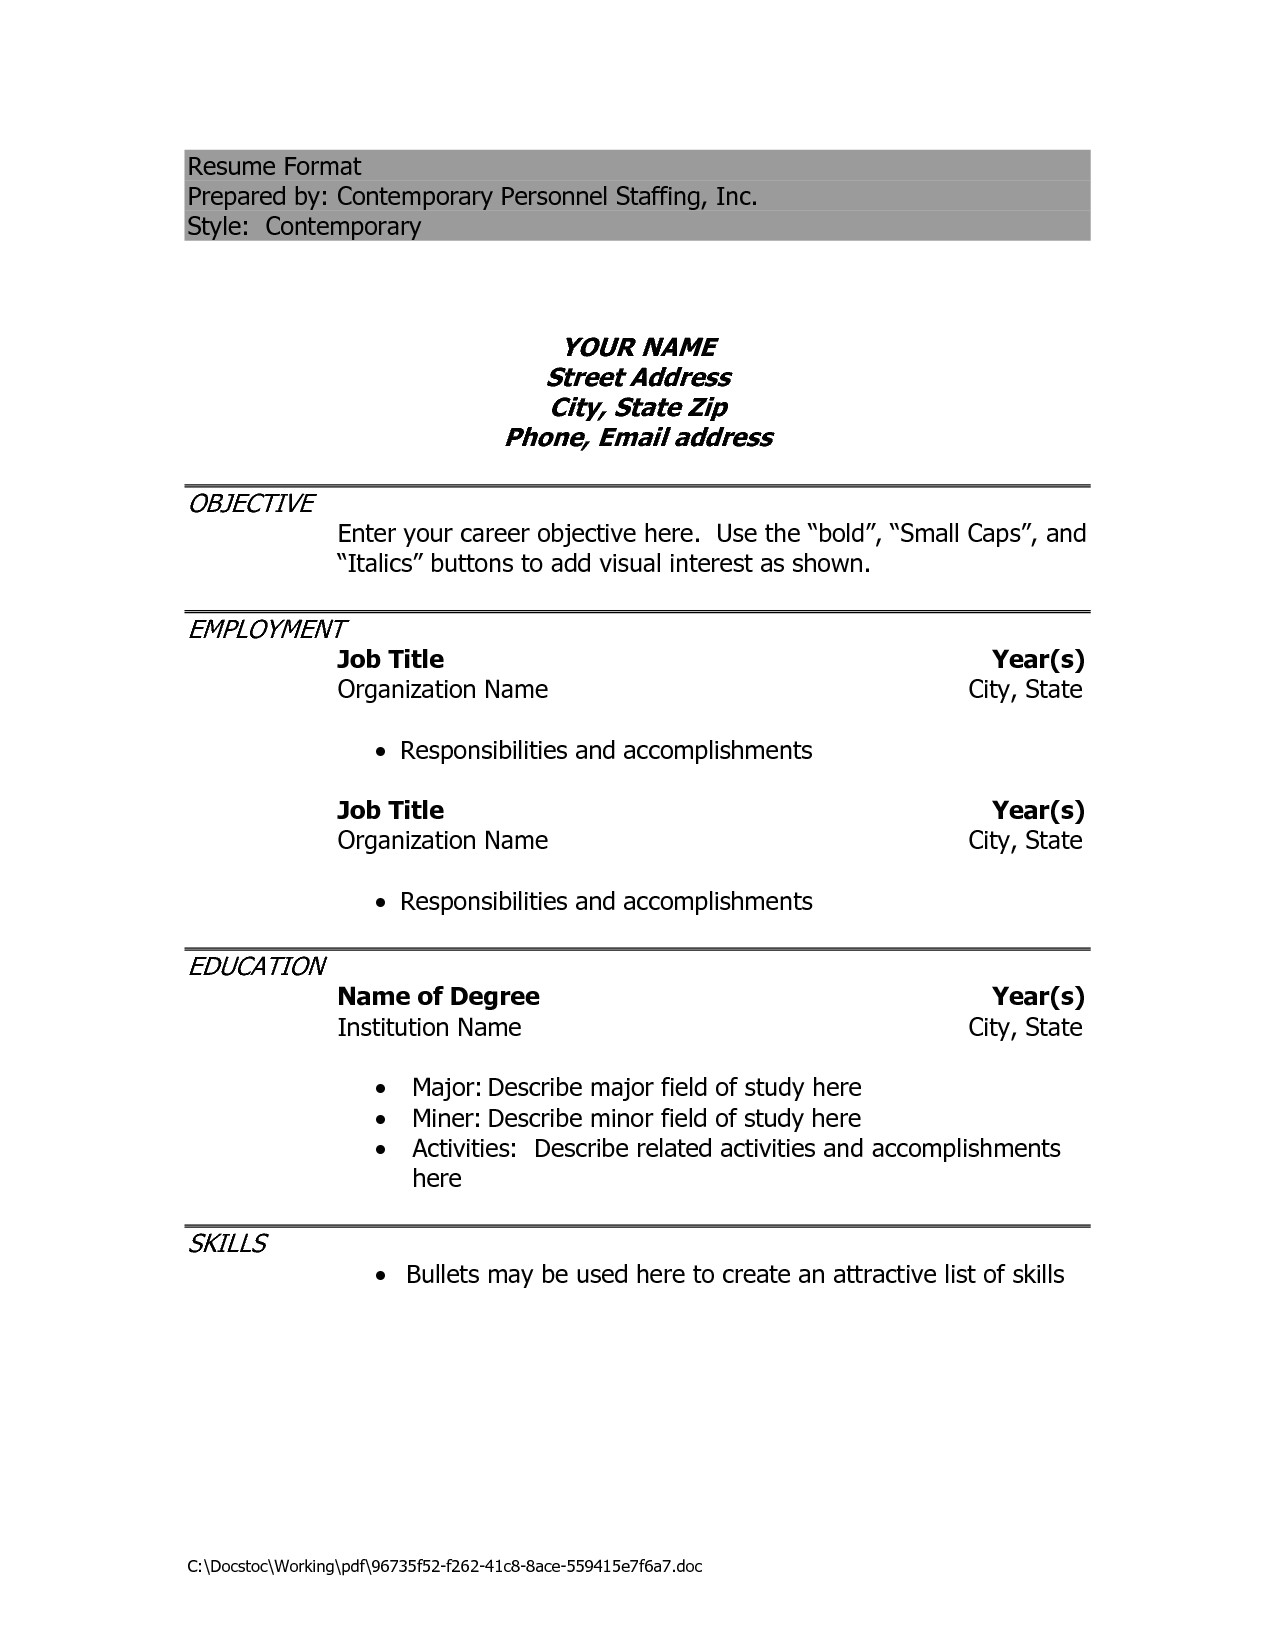 Free Doc Resume Templates Resume Sample Doc Free Excel Templates